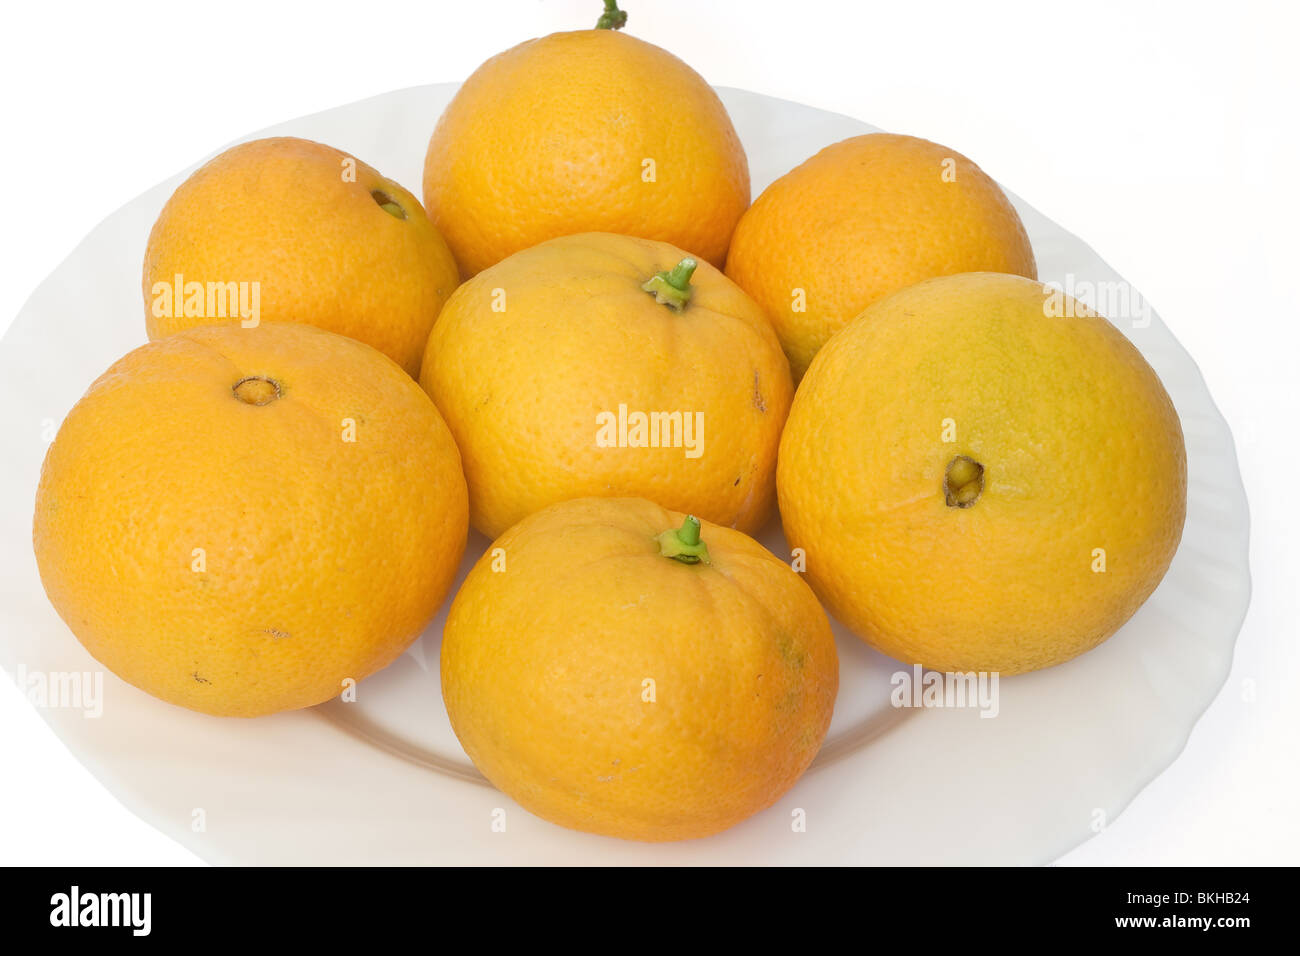 a group of ripe oranges on a white plate isolated on white background - Stock Image